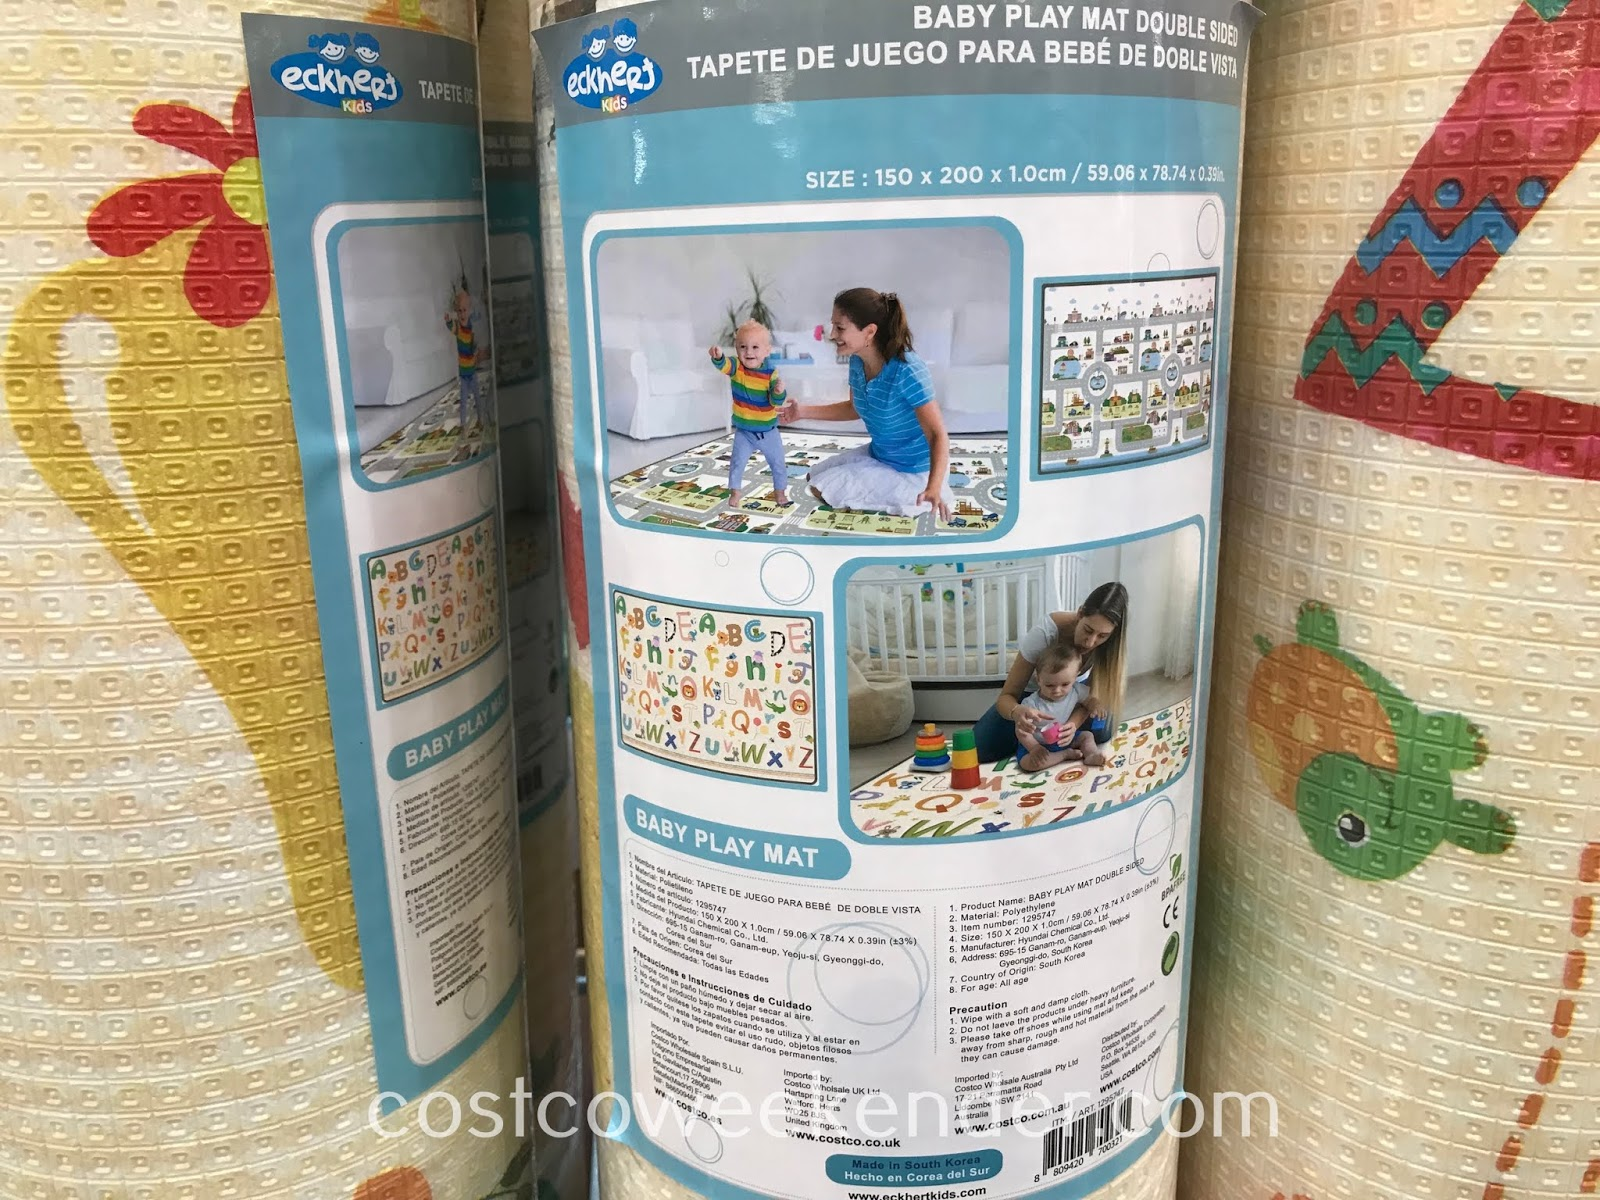 Costco 1295747 - Eckhert Kids Baby Play Mat: great if you have little ones